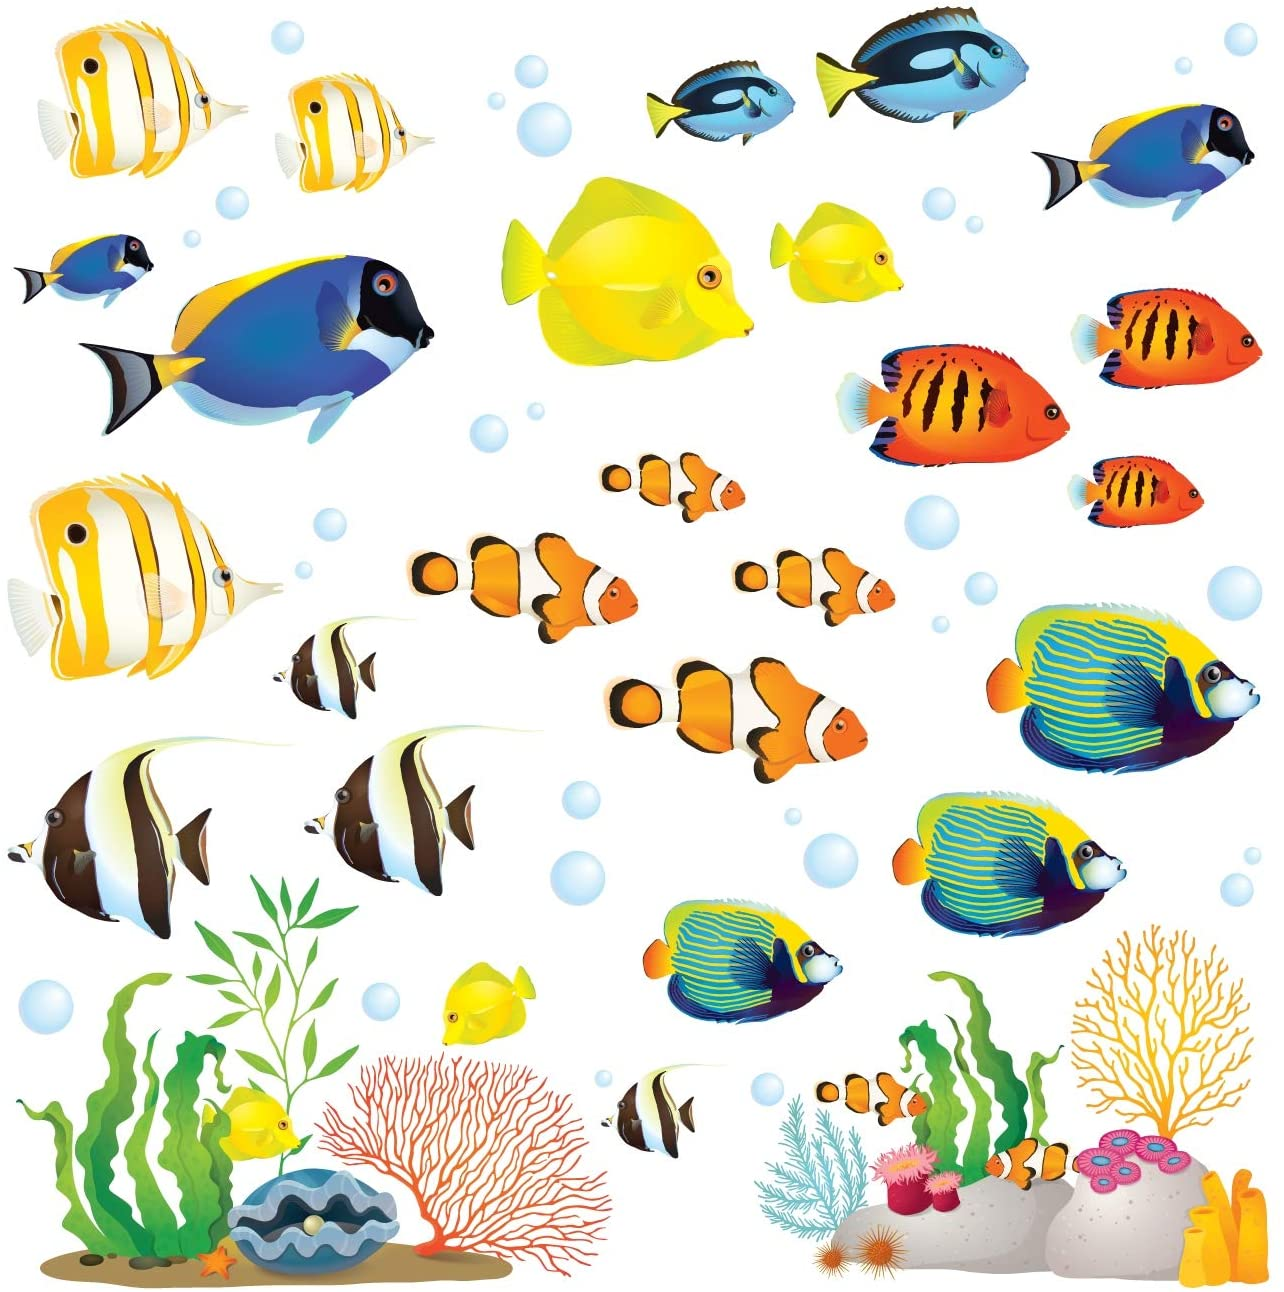 DECOWALL DS-8035 Coral Reef Fish Kids Wall Stickers Wall Decals Peel and Stick Removable Wall Stickers for Kids Nursery Bedroom Living Room (Small)